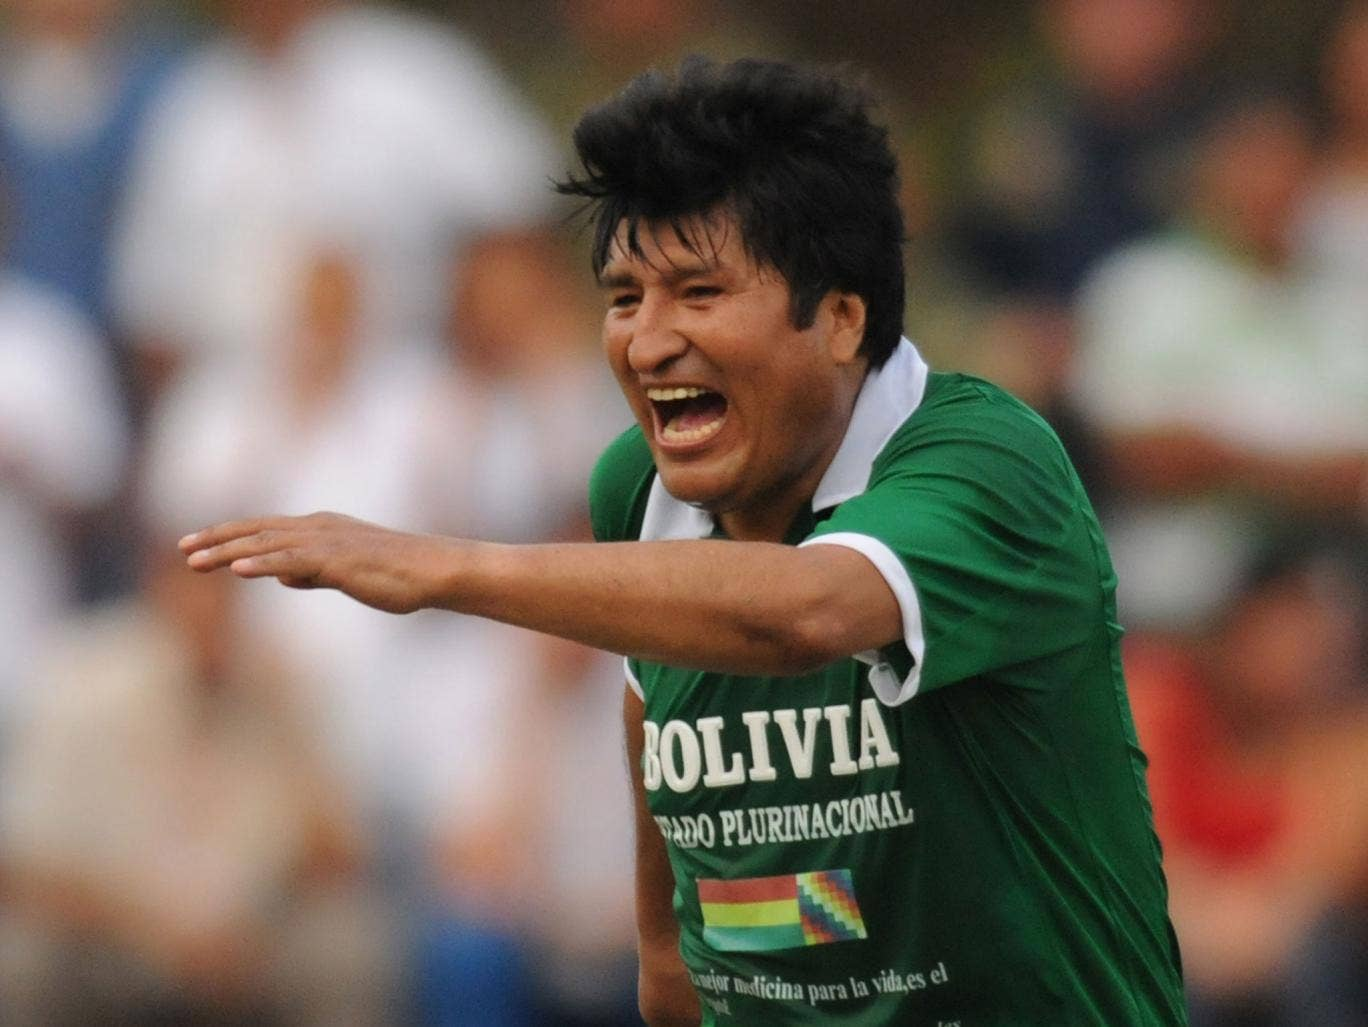 Bolivia's President Evo Morales celebrates his team's goal during a friendly football match against Colombia